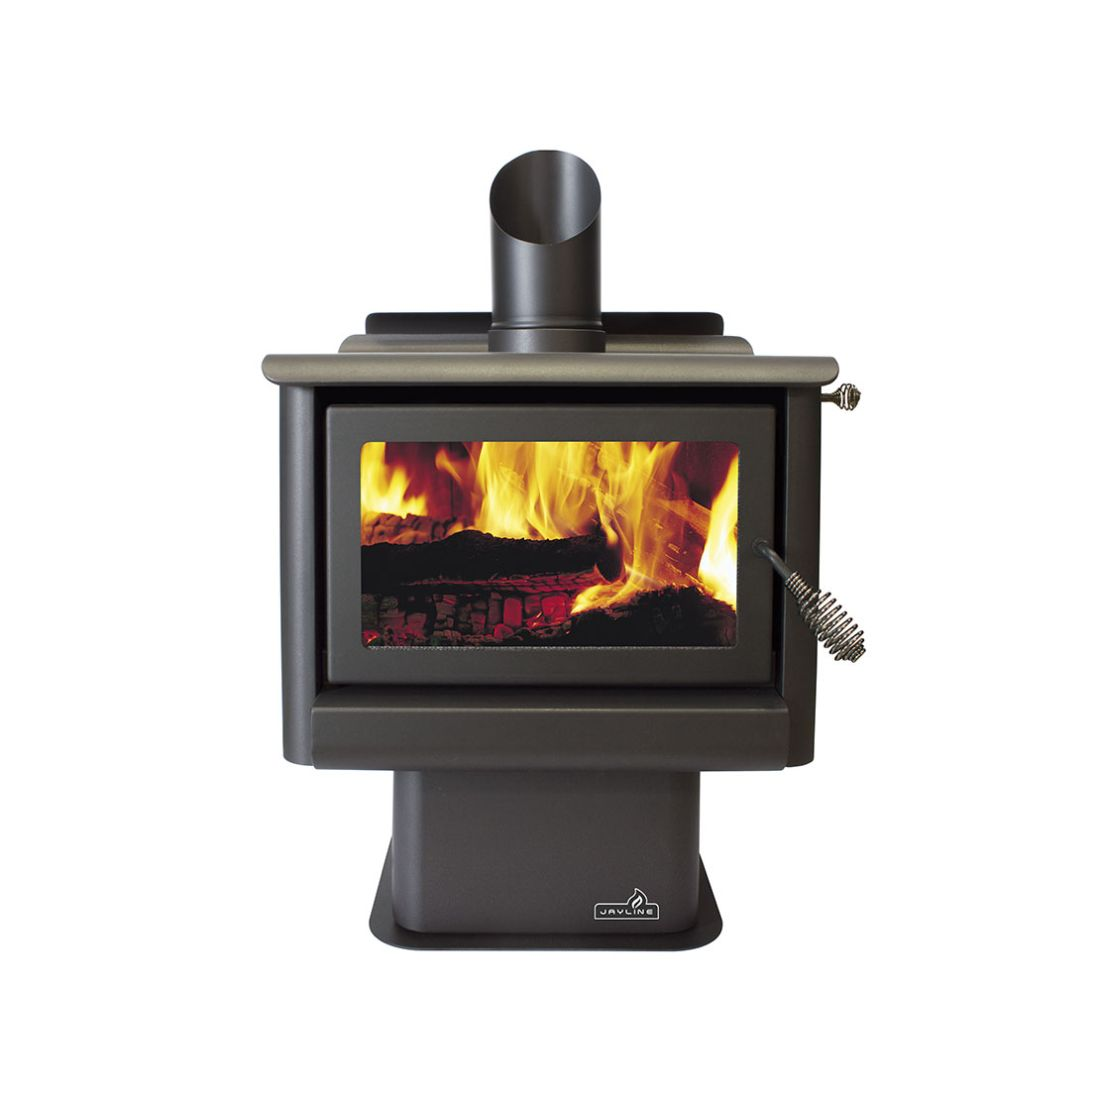 Jayline FR300 16kW Clean Air Wood Fire Metallic Black